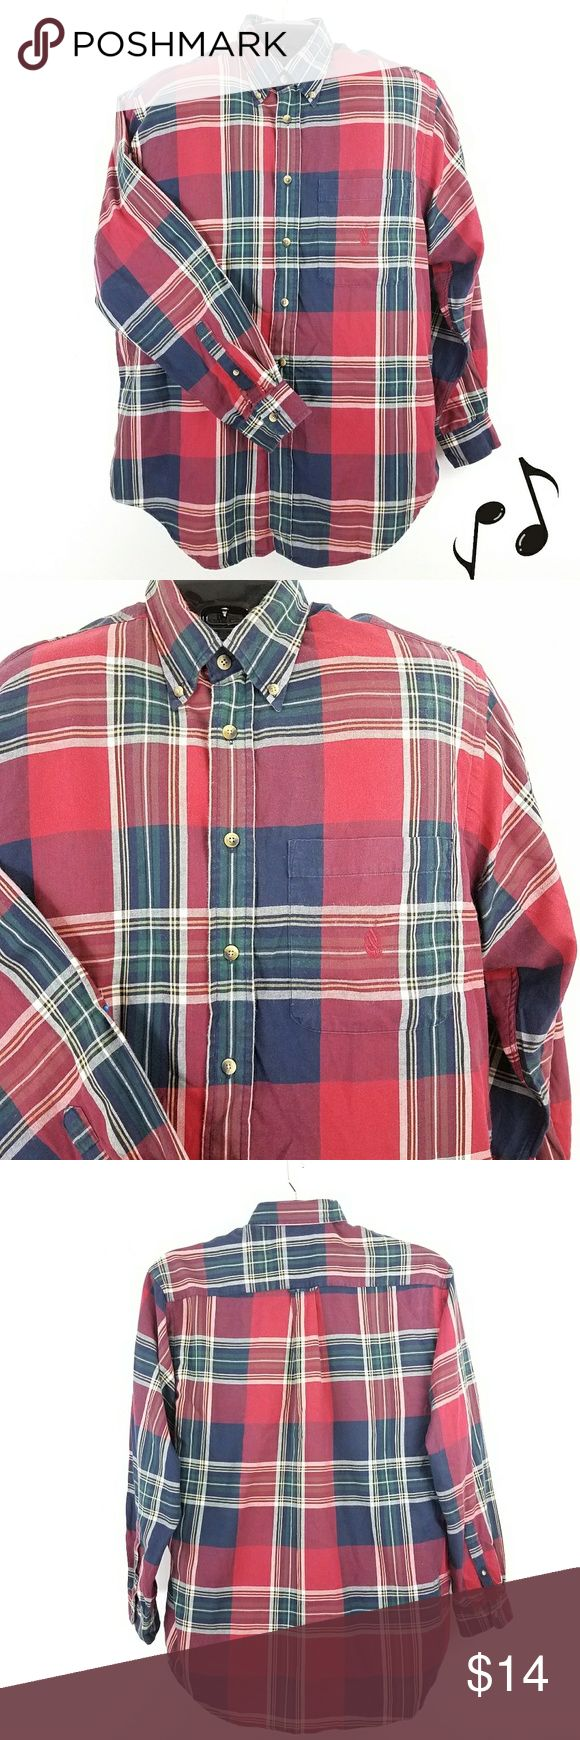 Nautica Men's Cotton Plaid Shirt please compare measurements with a garment that fits you well measured flat Chest 25 neck 17 Shoulder 21 Length 32 lightweight brushed cotton fabric Red/blue/white Button Front. Matched left breast pocket. long sleeve/single button cuff Shirt-tail hem. Button down collar. Machine Wash good condition  2017448 Nautica Shirts Casual Button Down Shirts